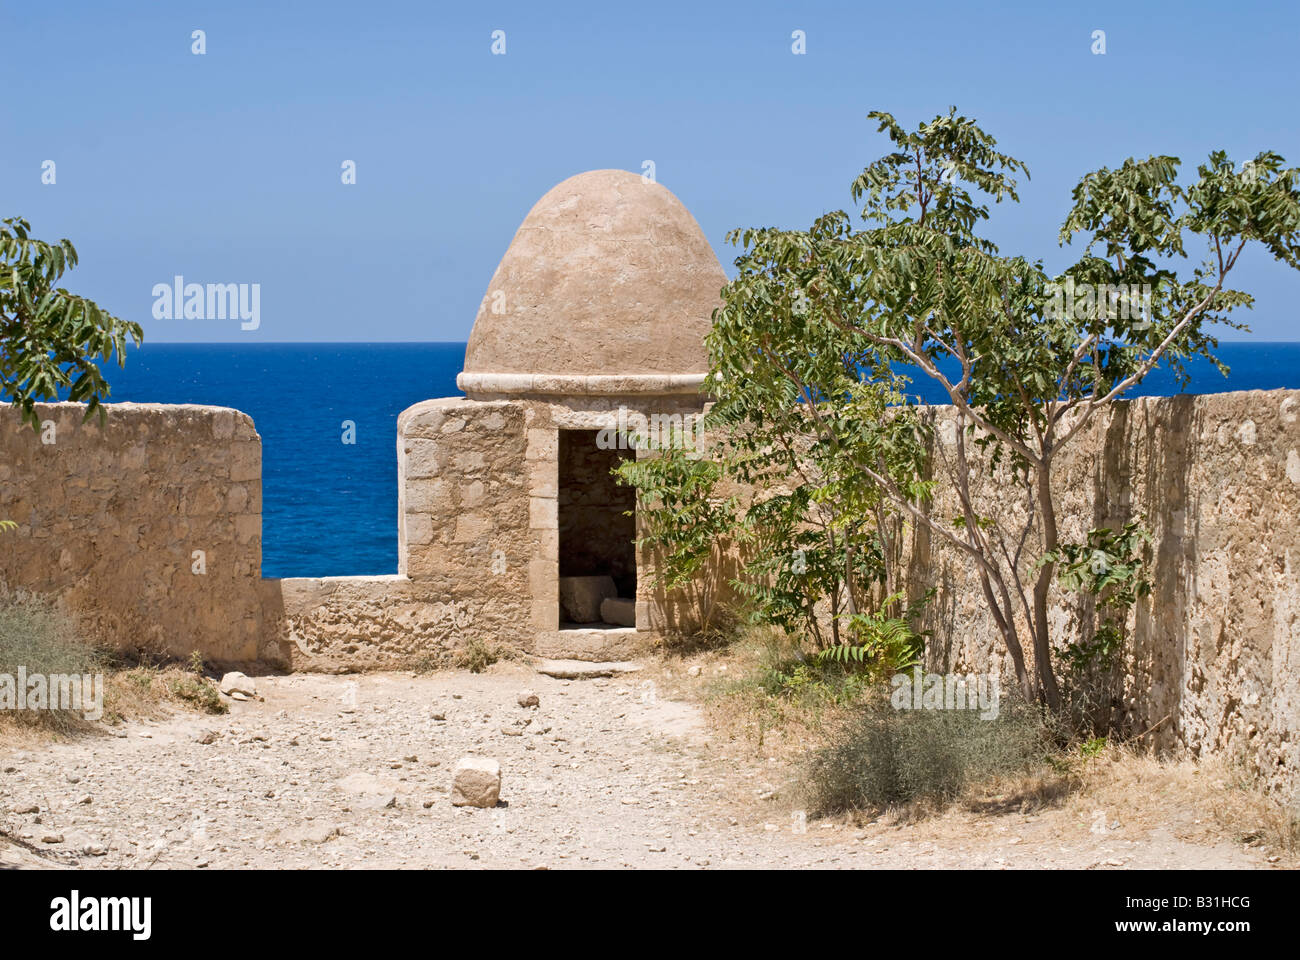 Rethymno, Crete, Greece. Fortress (Phrourion or Fortezza - 16thC) Domed Mosque Stock Photo